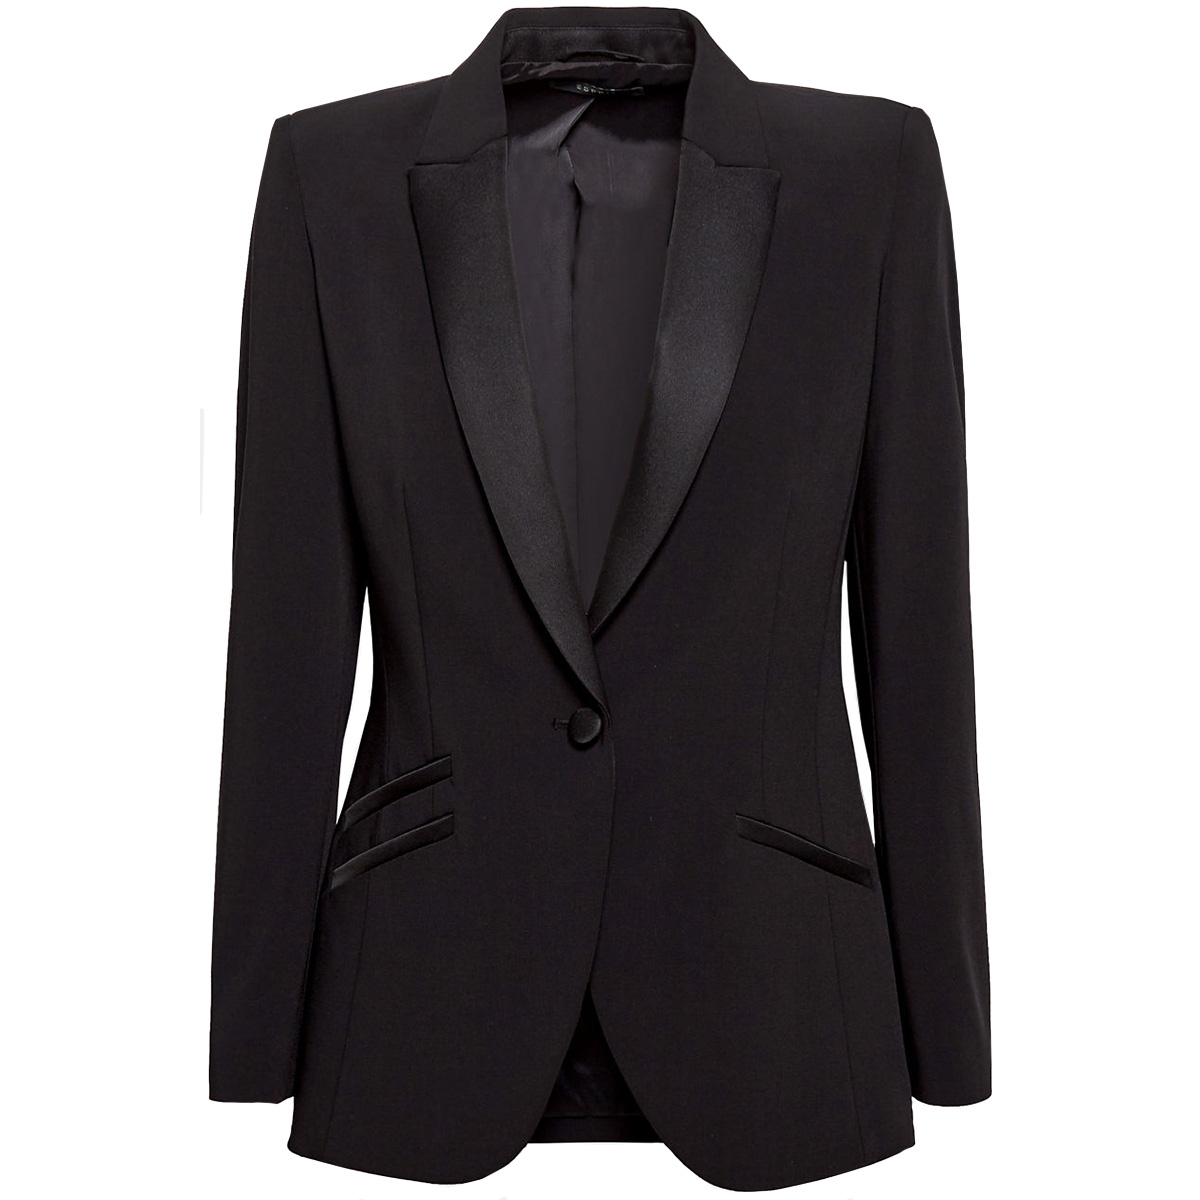 128eo1g006 esprit collection blazer e001